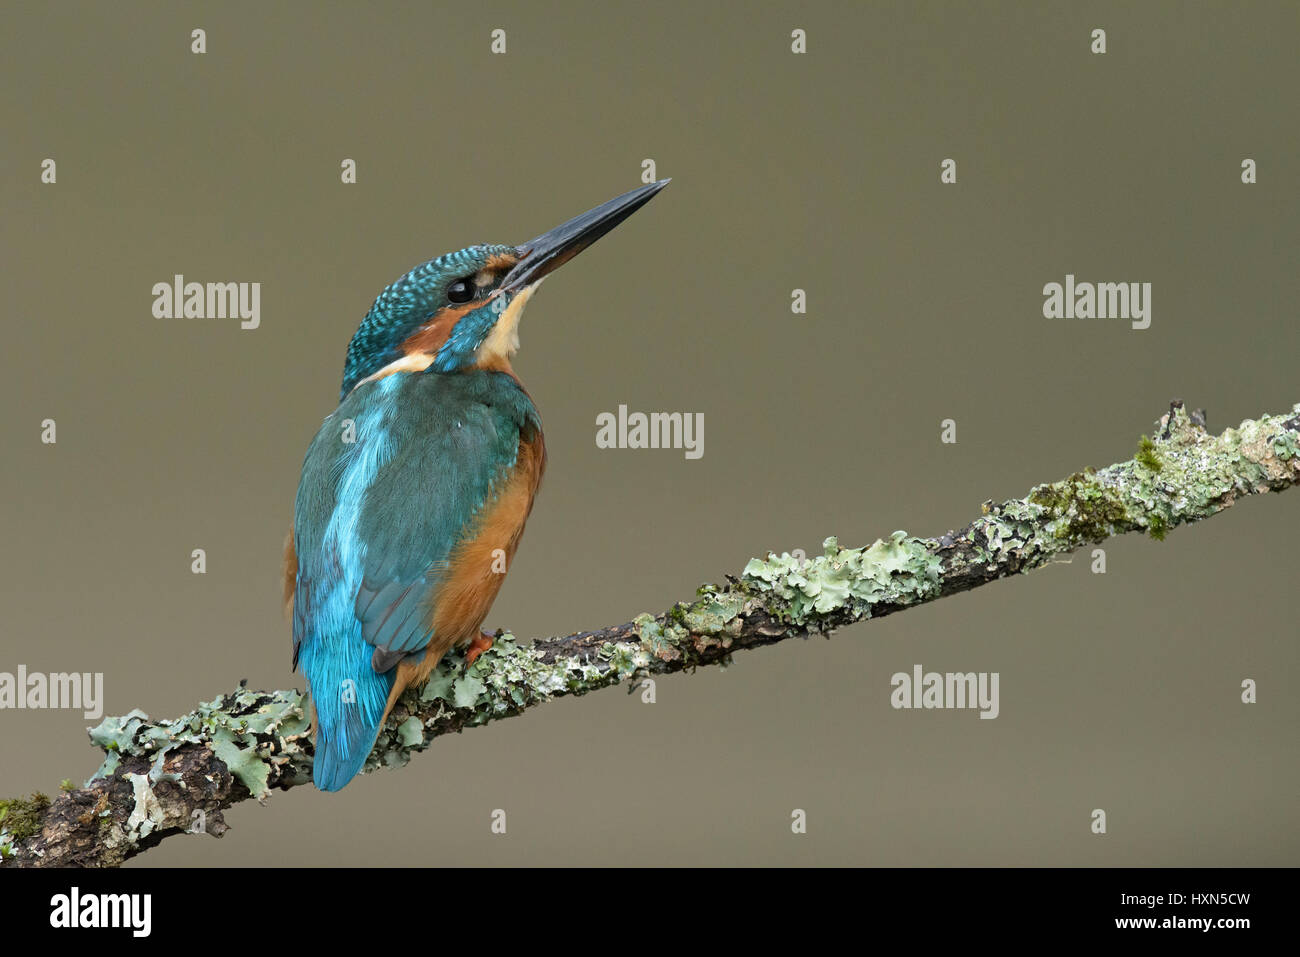 Common kingfisher (Alcedo atthis) adult female. Worcestershire, England. September. Stock Photo